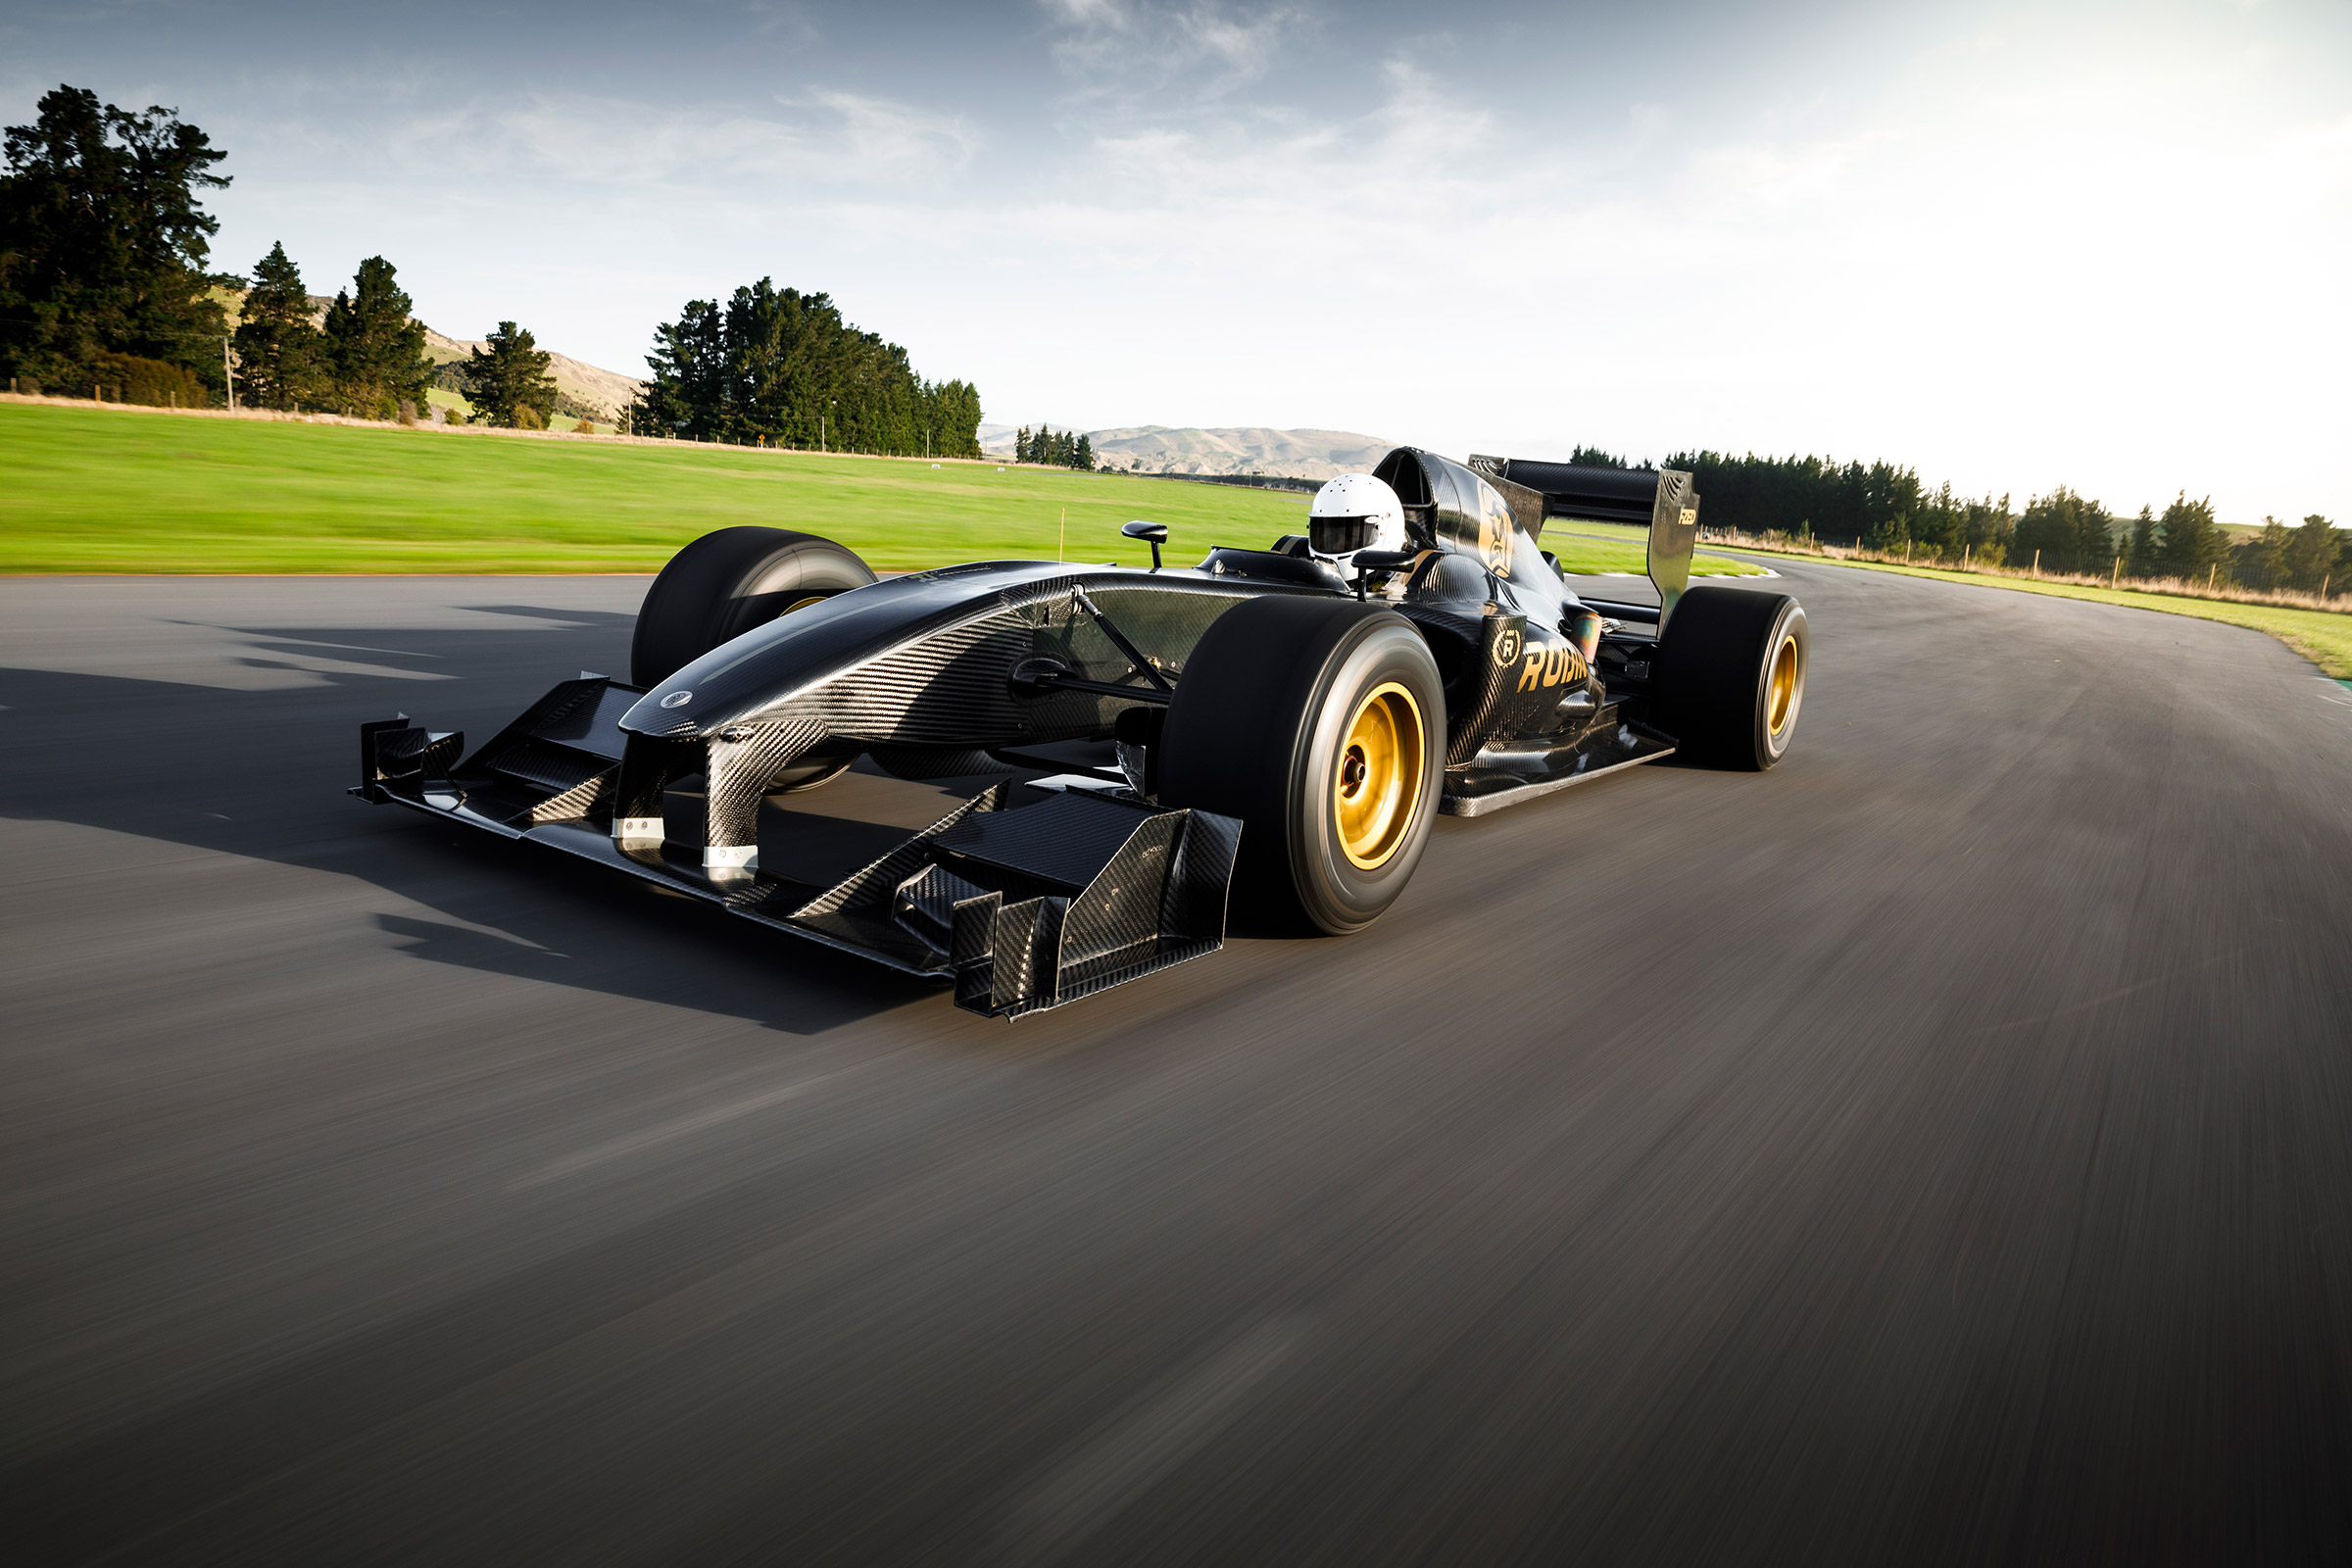 Rodin Cars, a young but ambitious company from New Zealand, has just demonstrated to us that it can do more than talk. After announcing a 'Valkyrie-beating' hypercar, it actually released its first vehicle. Meet the FZED, a single-seat racecar based on the 2011 Lotus T125.